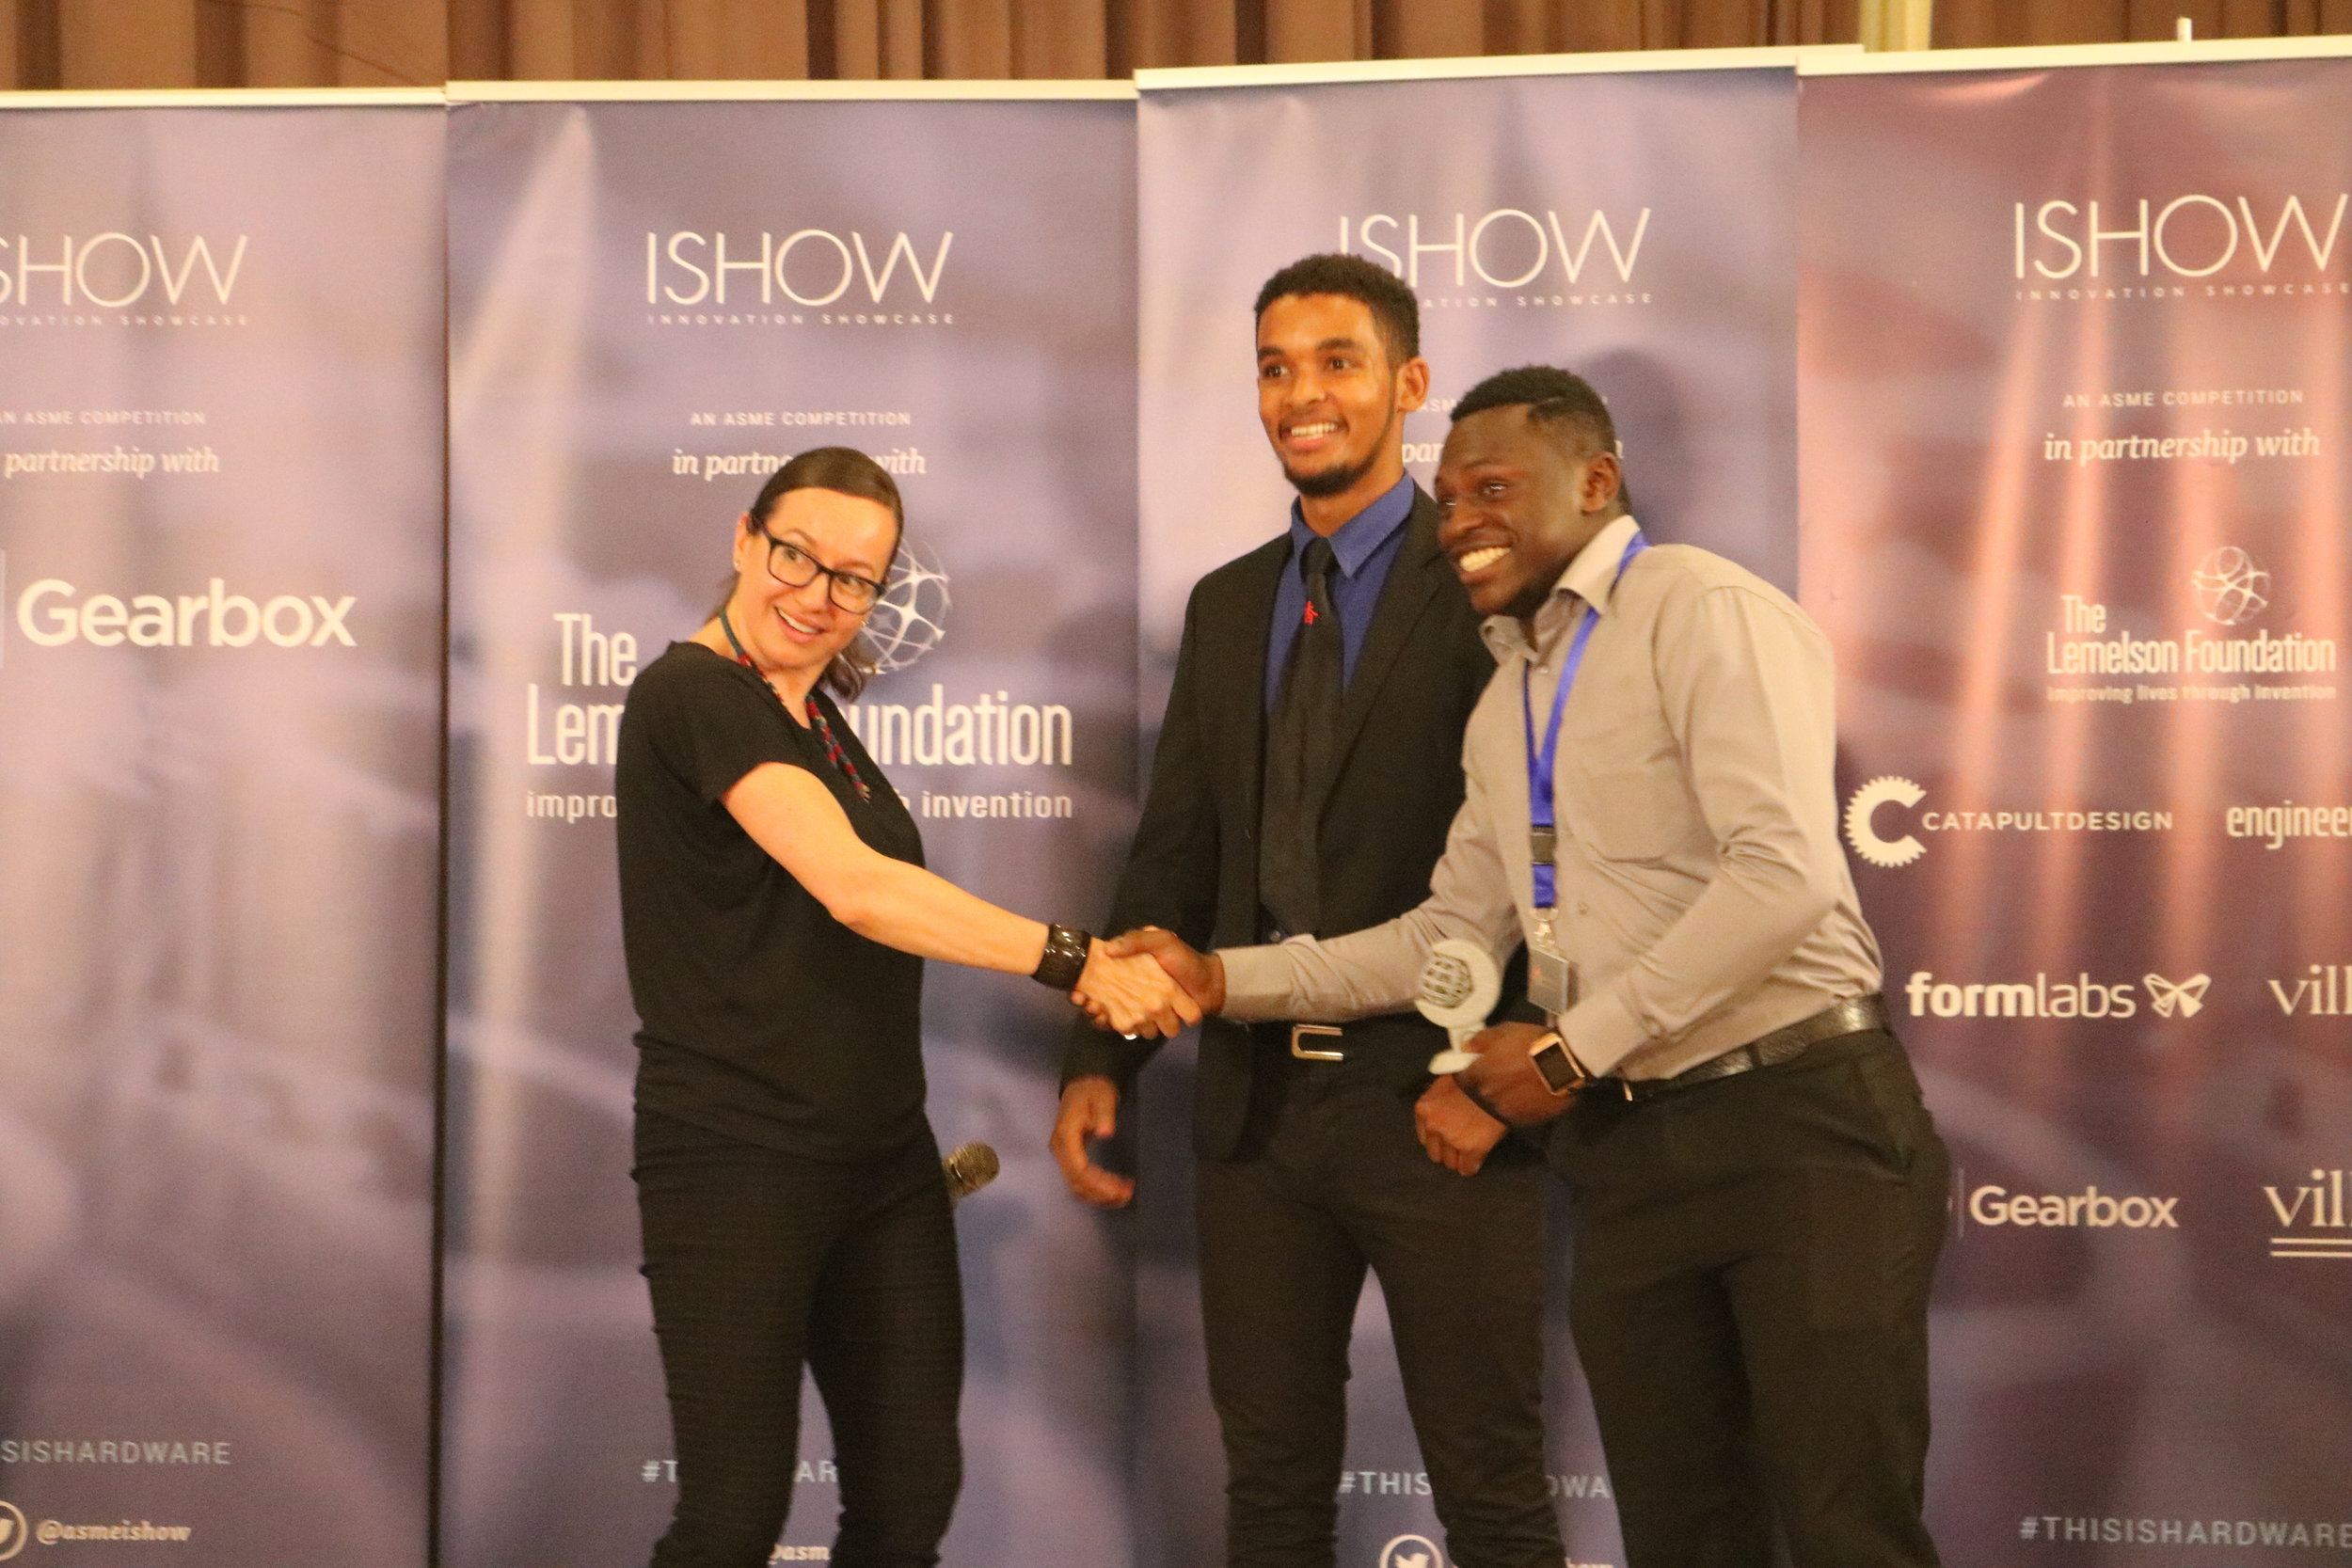 Bentos Energy win Ishow 2018